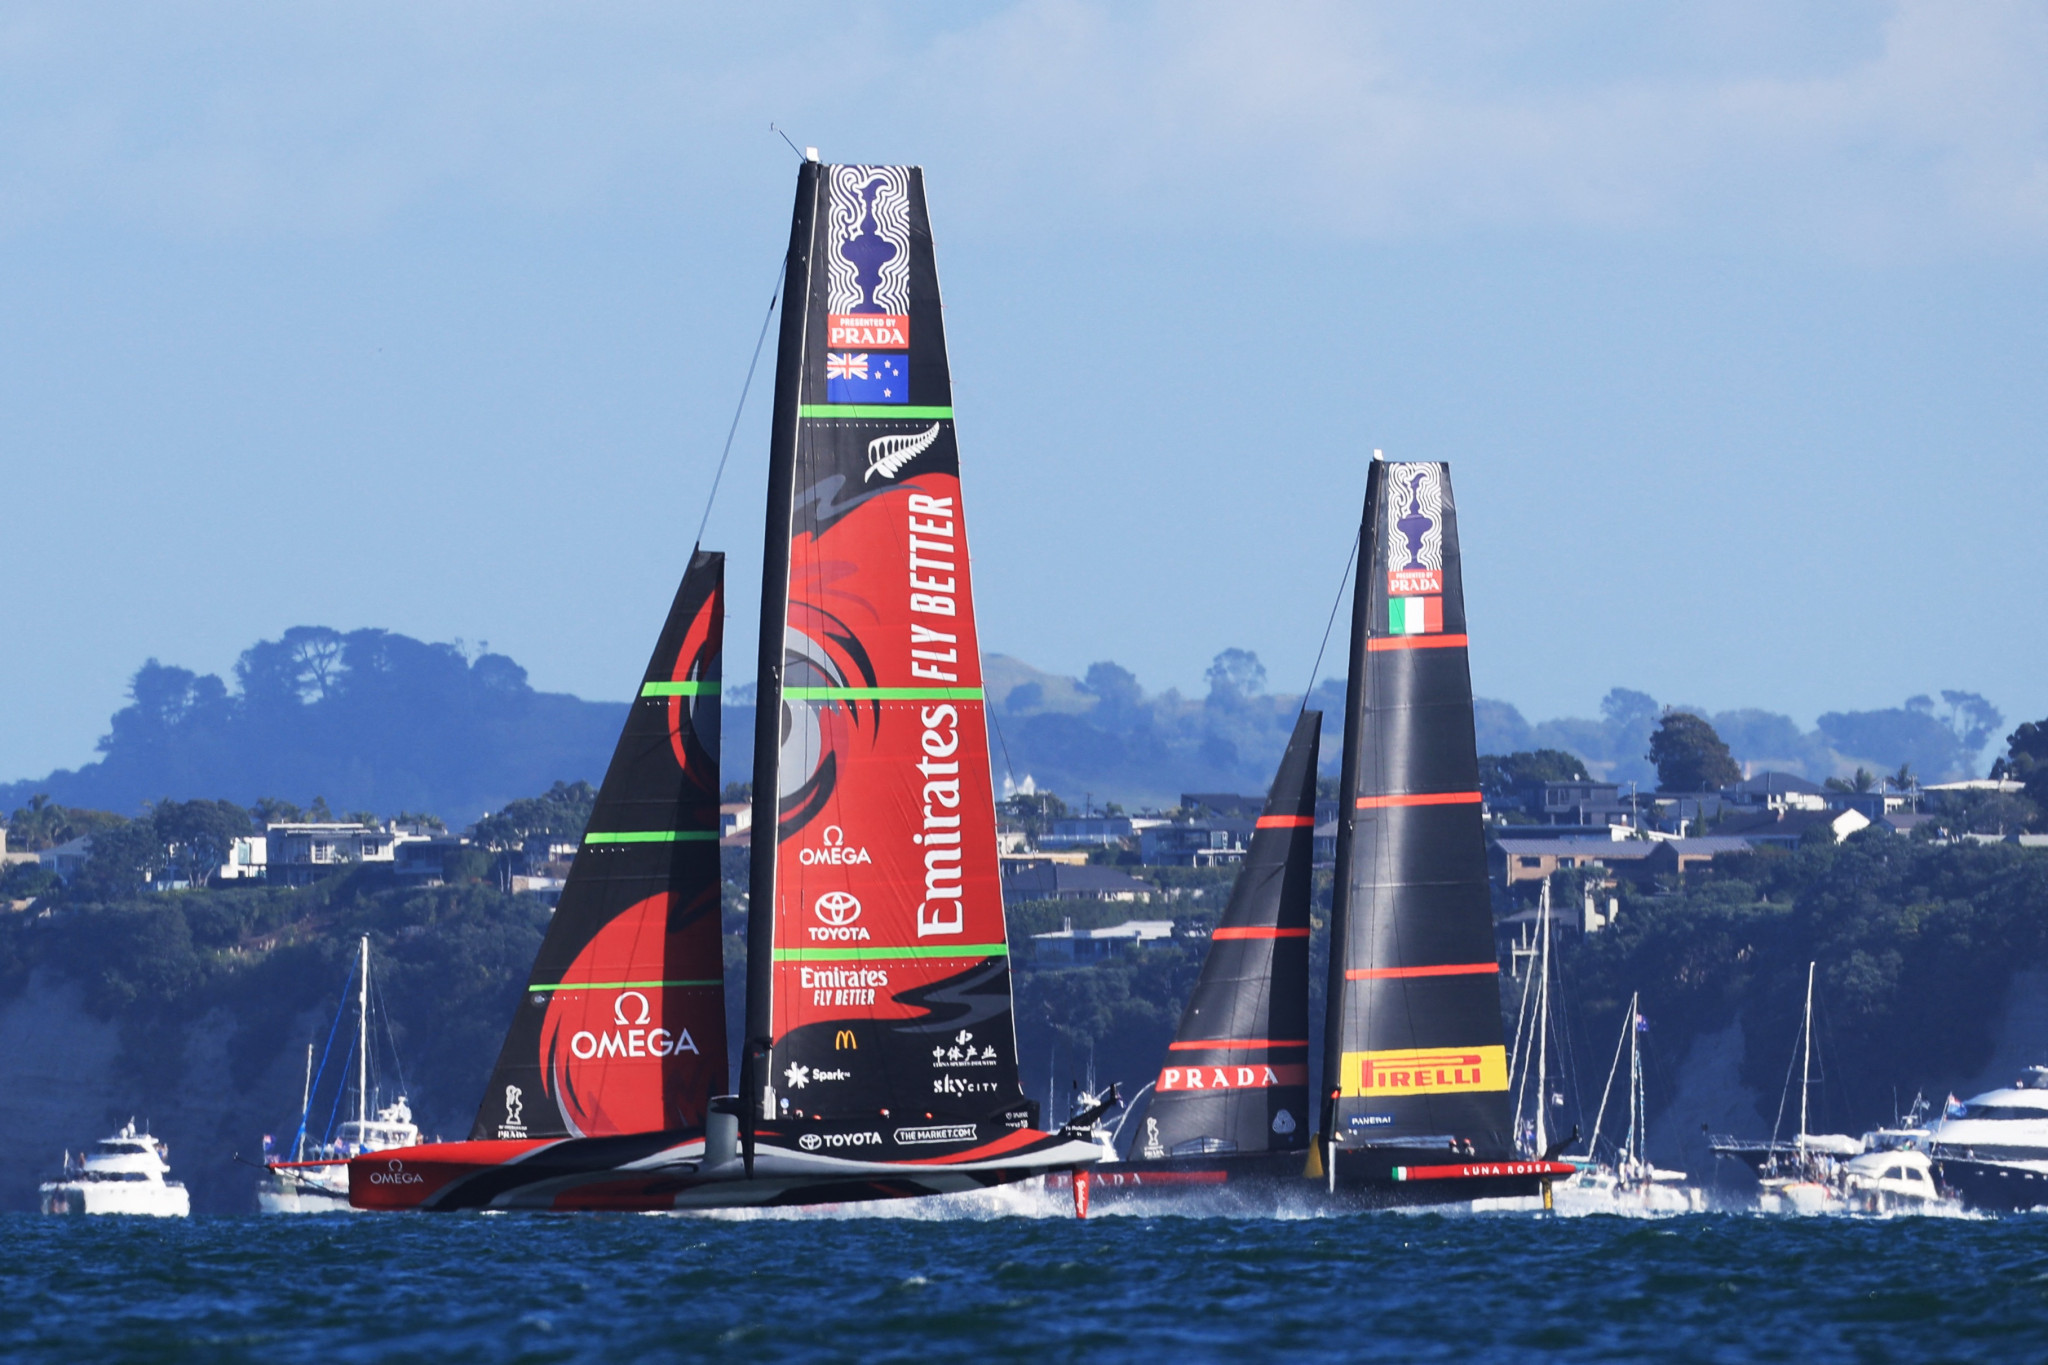 Women's and youth events to form part of America's Cup thanks to new boat